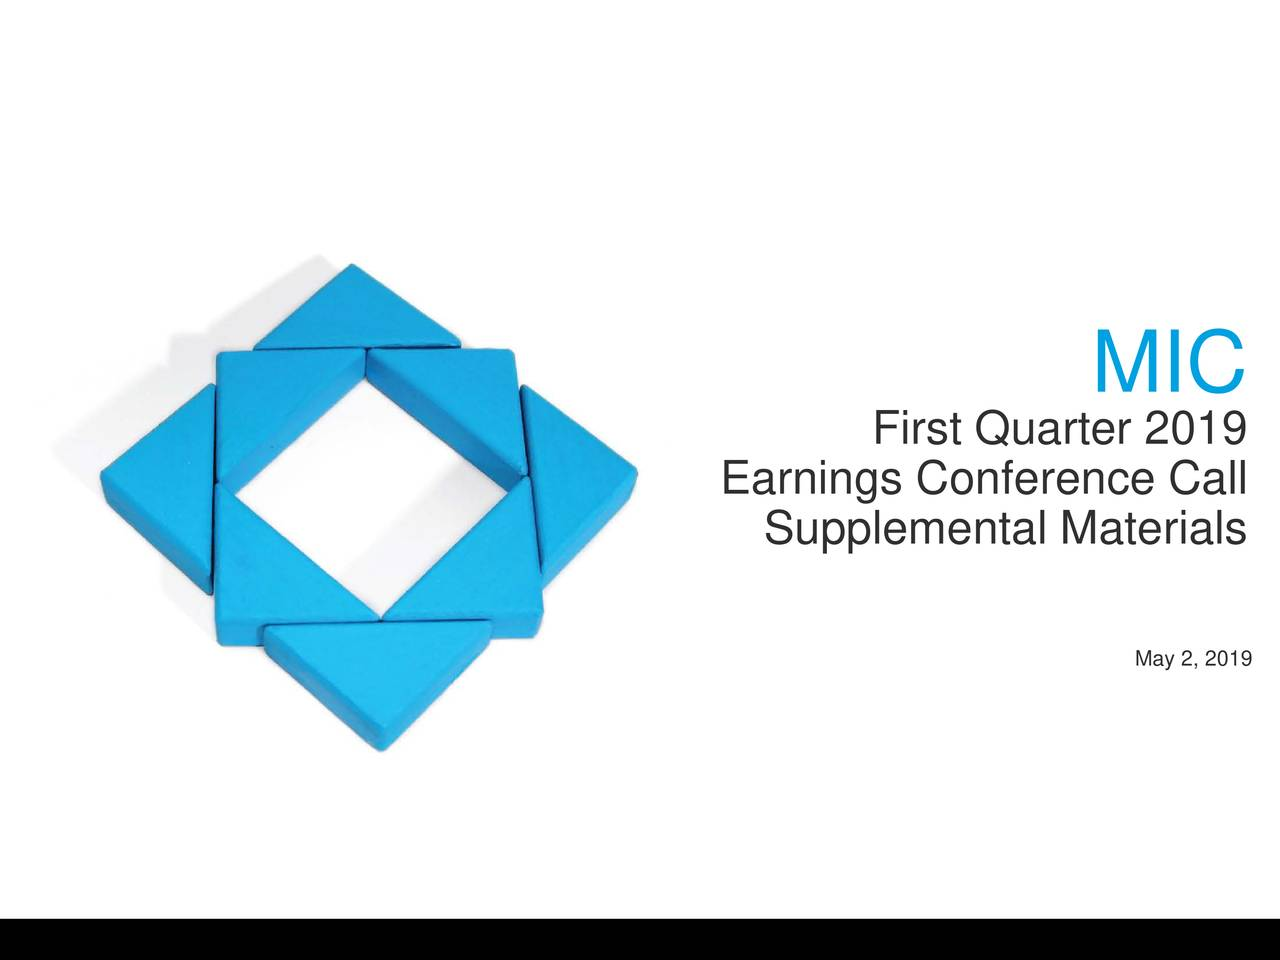 First Quarter 2019 Earnings Conference Call Supplemental Materials May 2, 2019